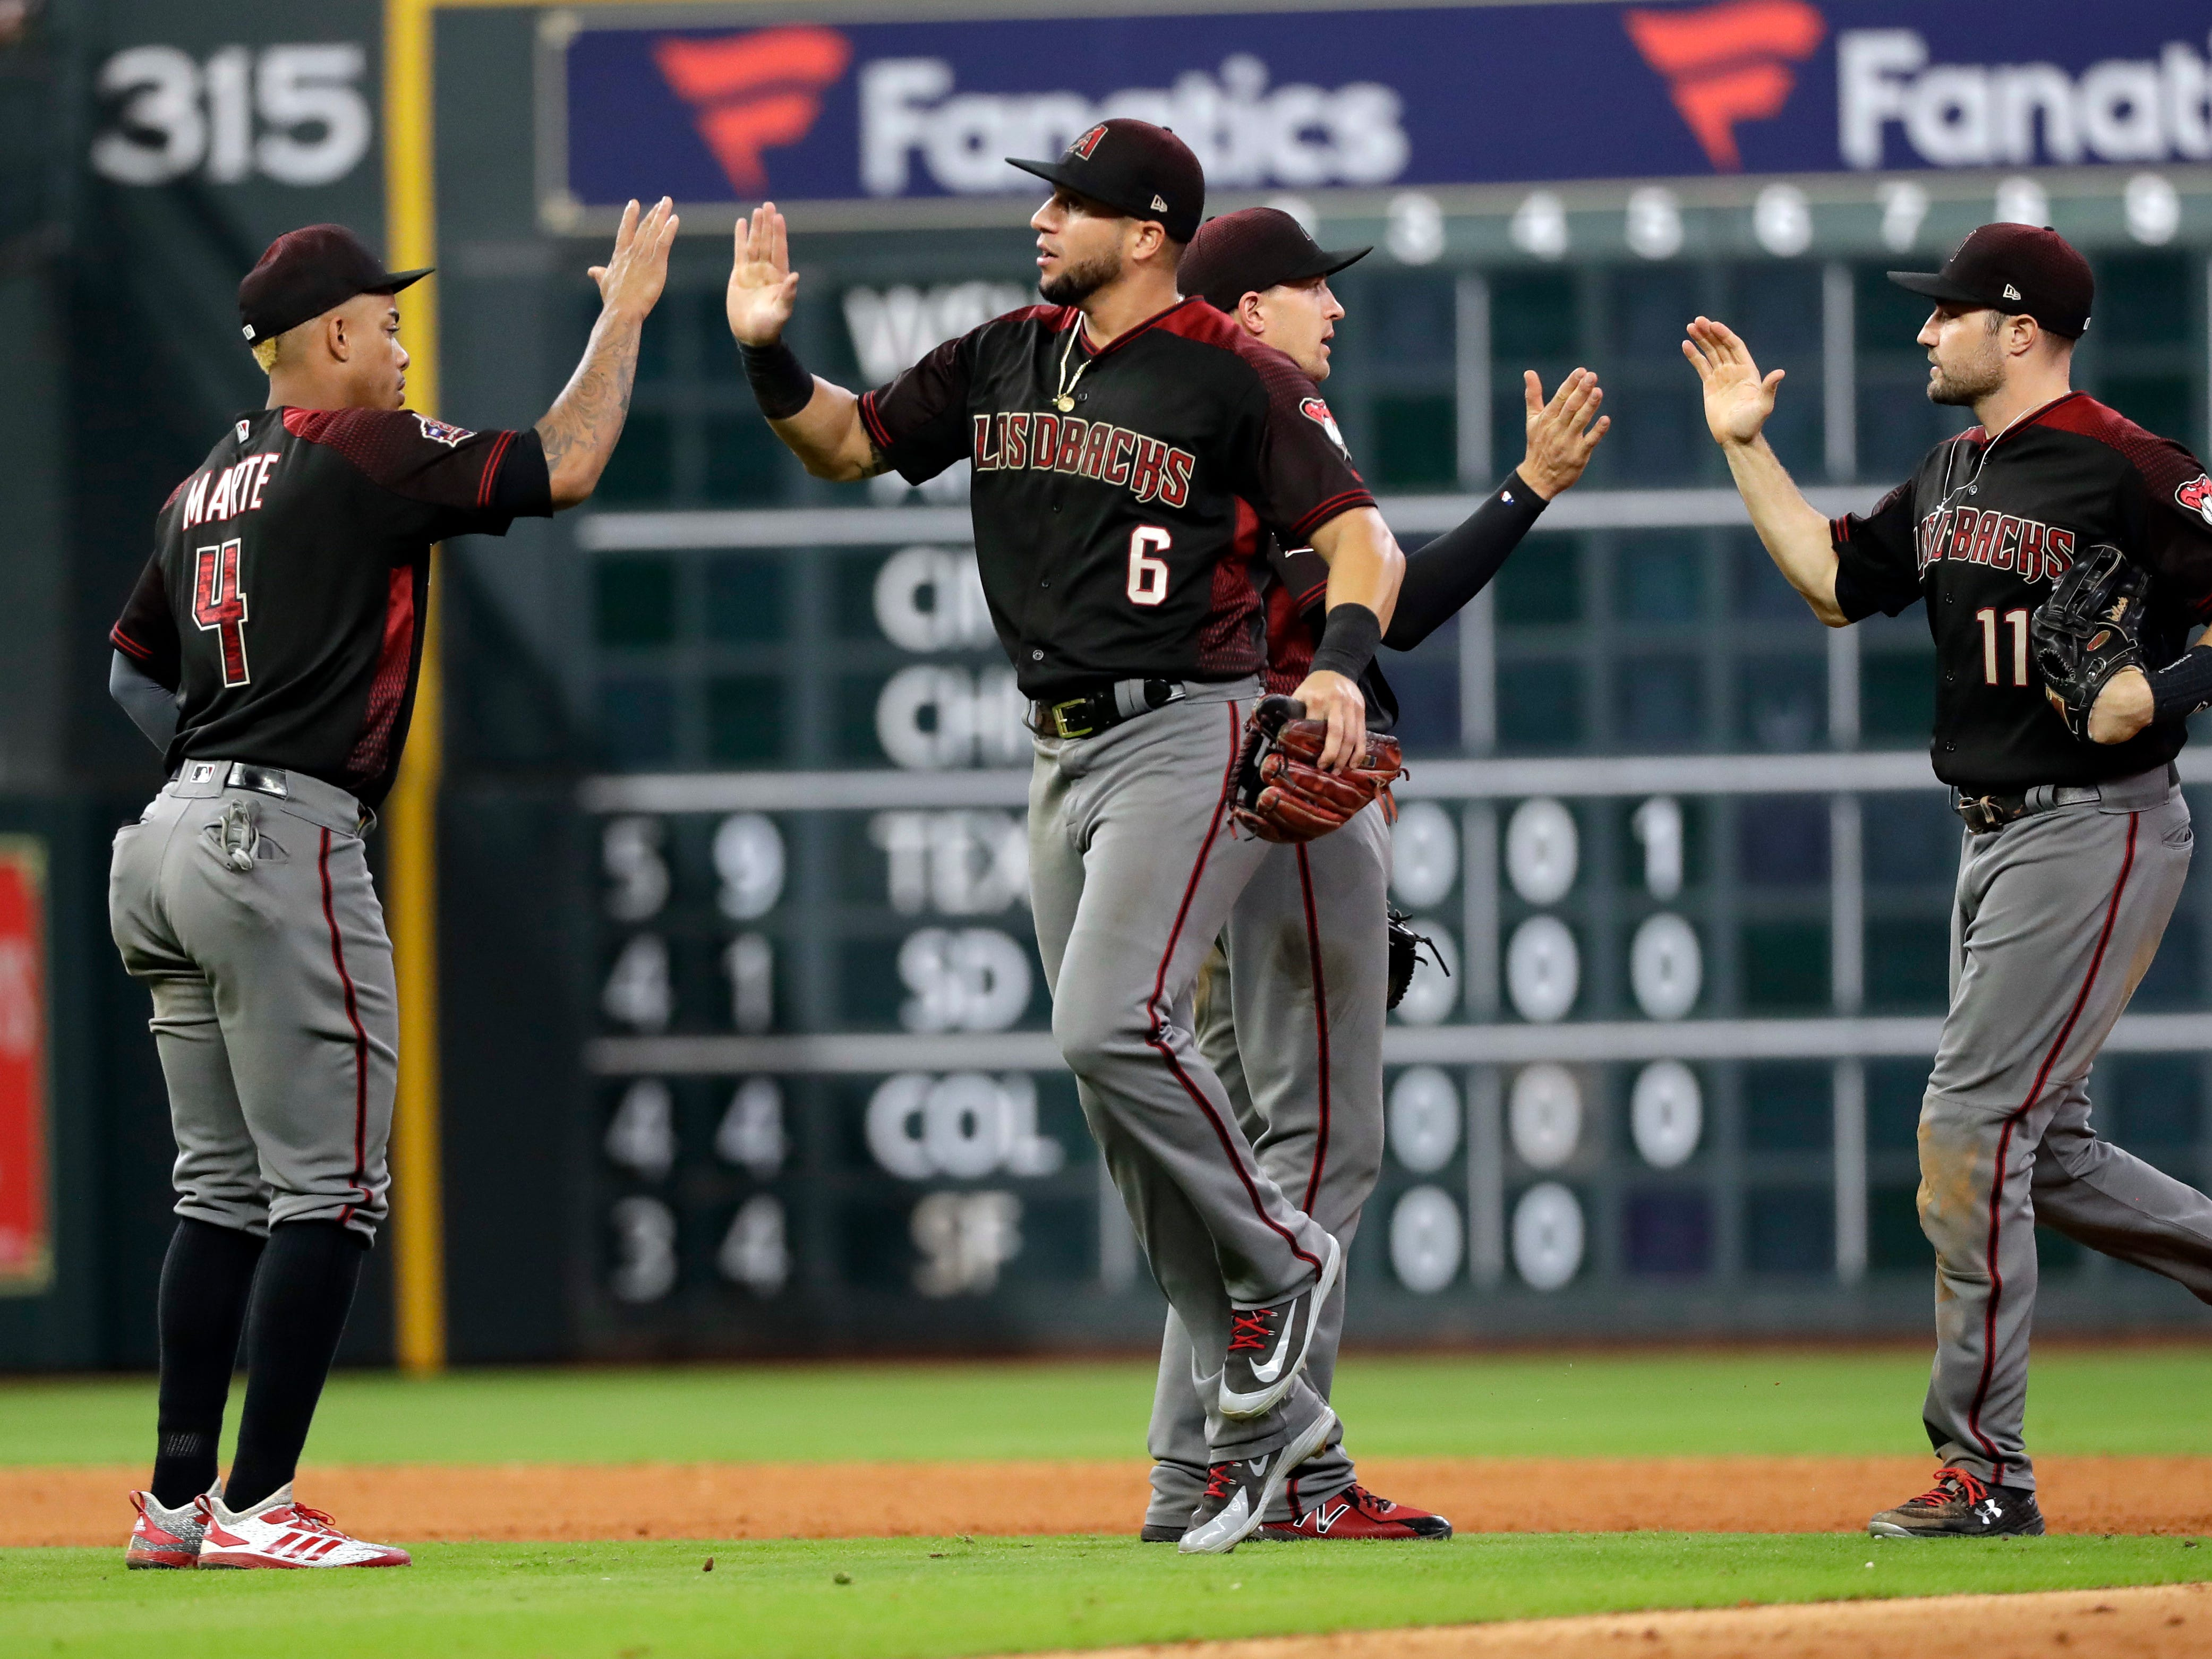 Arizona Diamondbacks' Ketel Marte (4), David Peralta (6), Nick Ahmed and A.J. Pollock (11) celebrate after a baseball game against the Houston Astros Friday, Sept. 14, 2018, in Houston. The Diamondbacks won 4-2. (AP Photo/David J. Phillip)